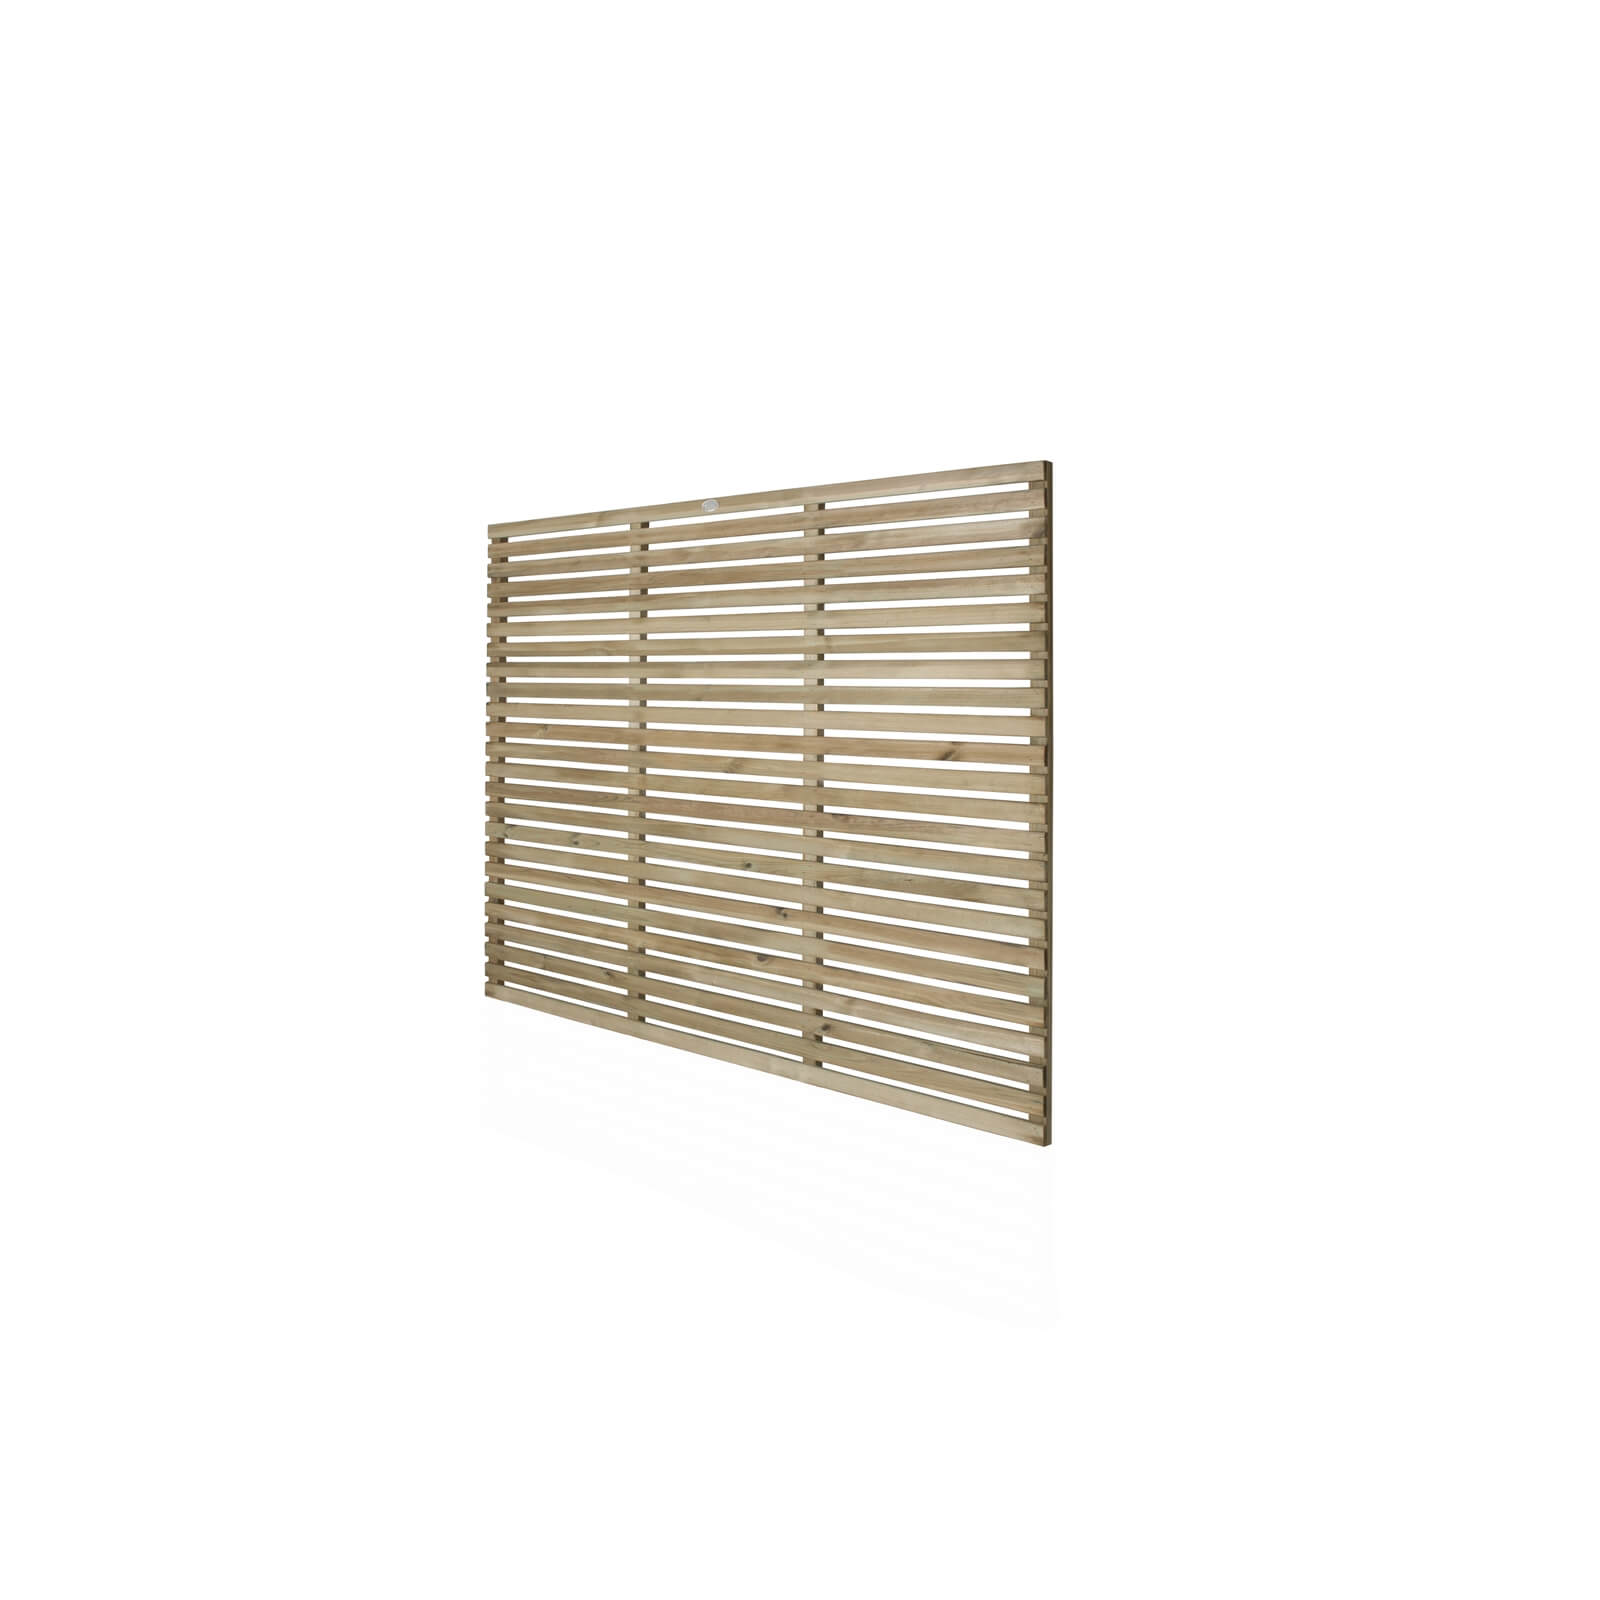 6ft x 5ft (1.8m x 1.5m) Pressure Treated Contemporary Slatted Fence Panel - Pack of 5